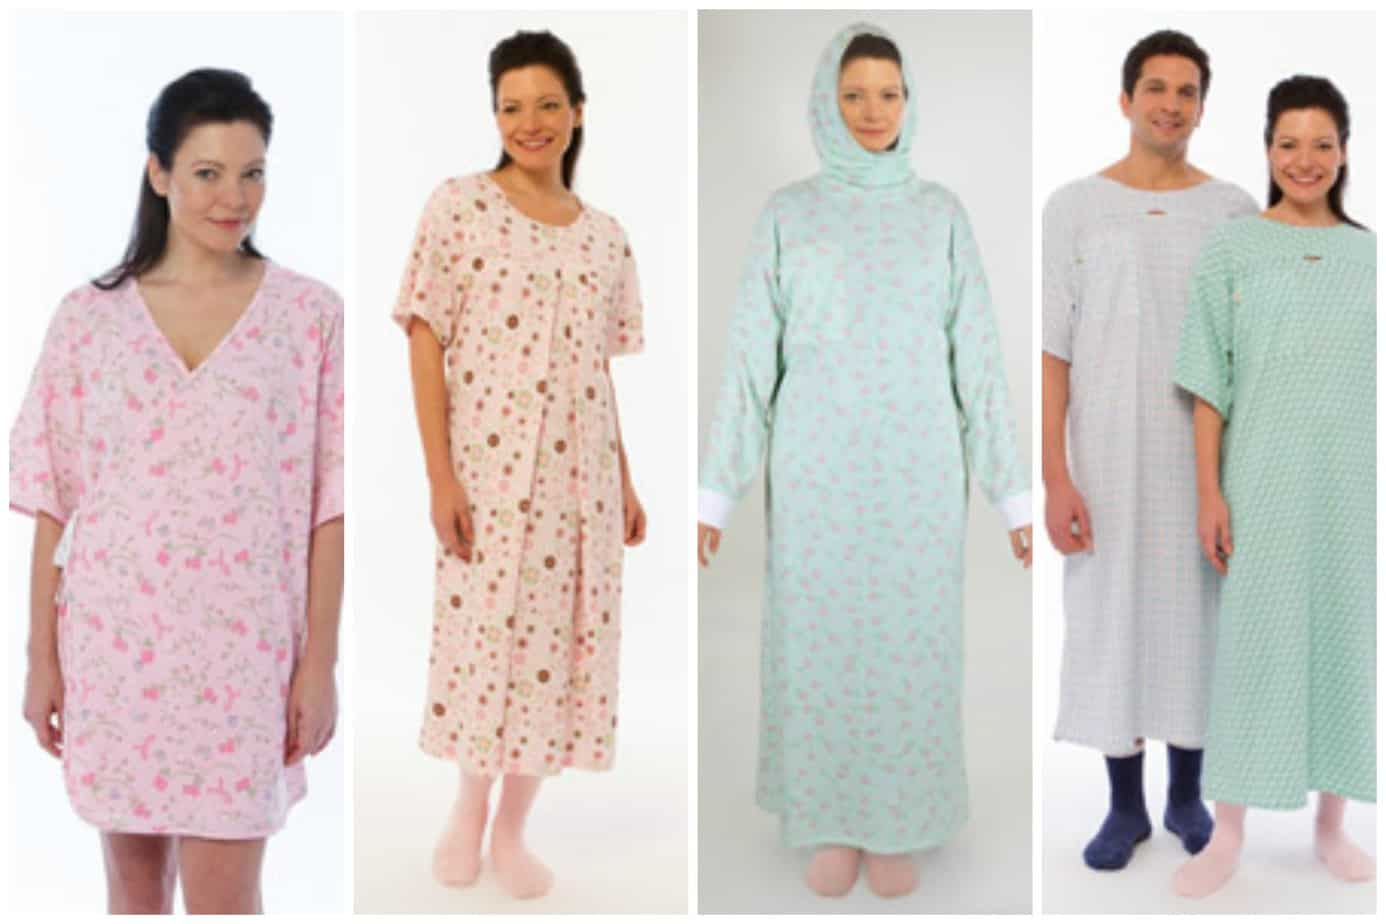 PatientStyle Gowns Allow You to Be Stylish in the Hospital #review ...